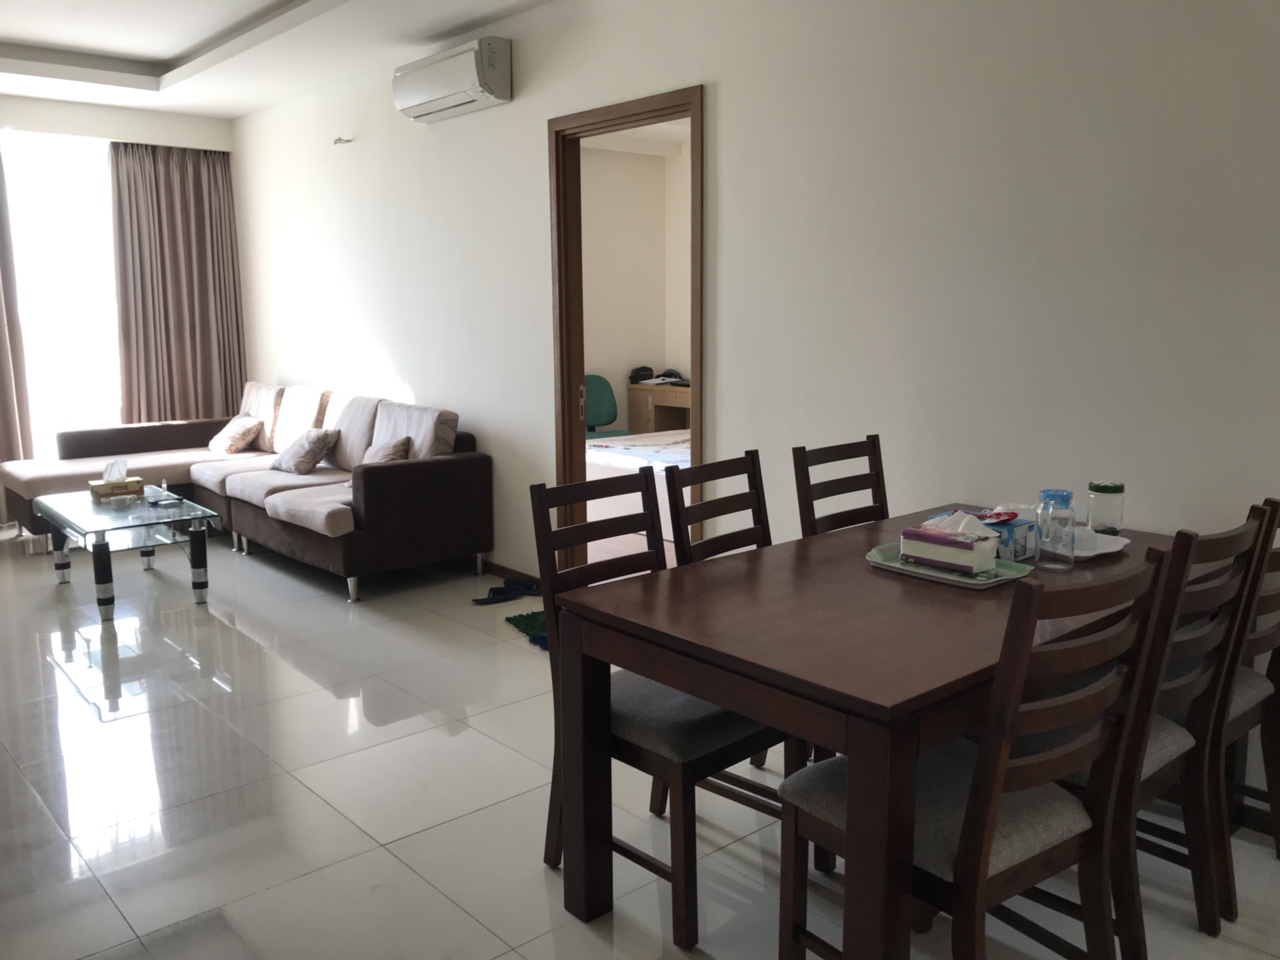 Thaodien pearl apartment for rent in district 2 hcmc D204125 (2)